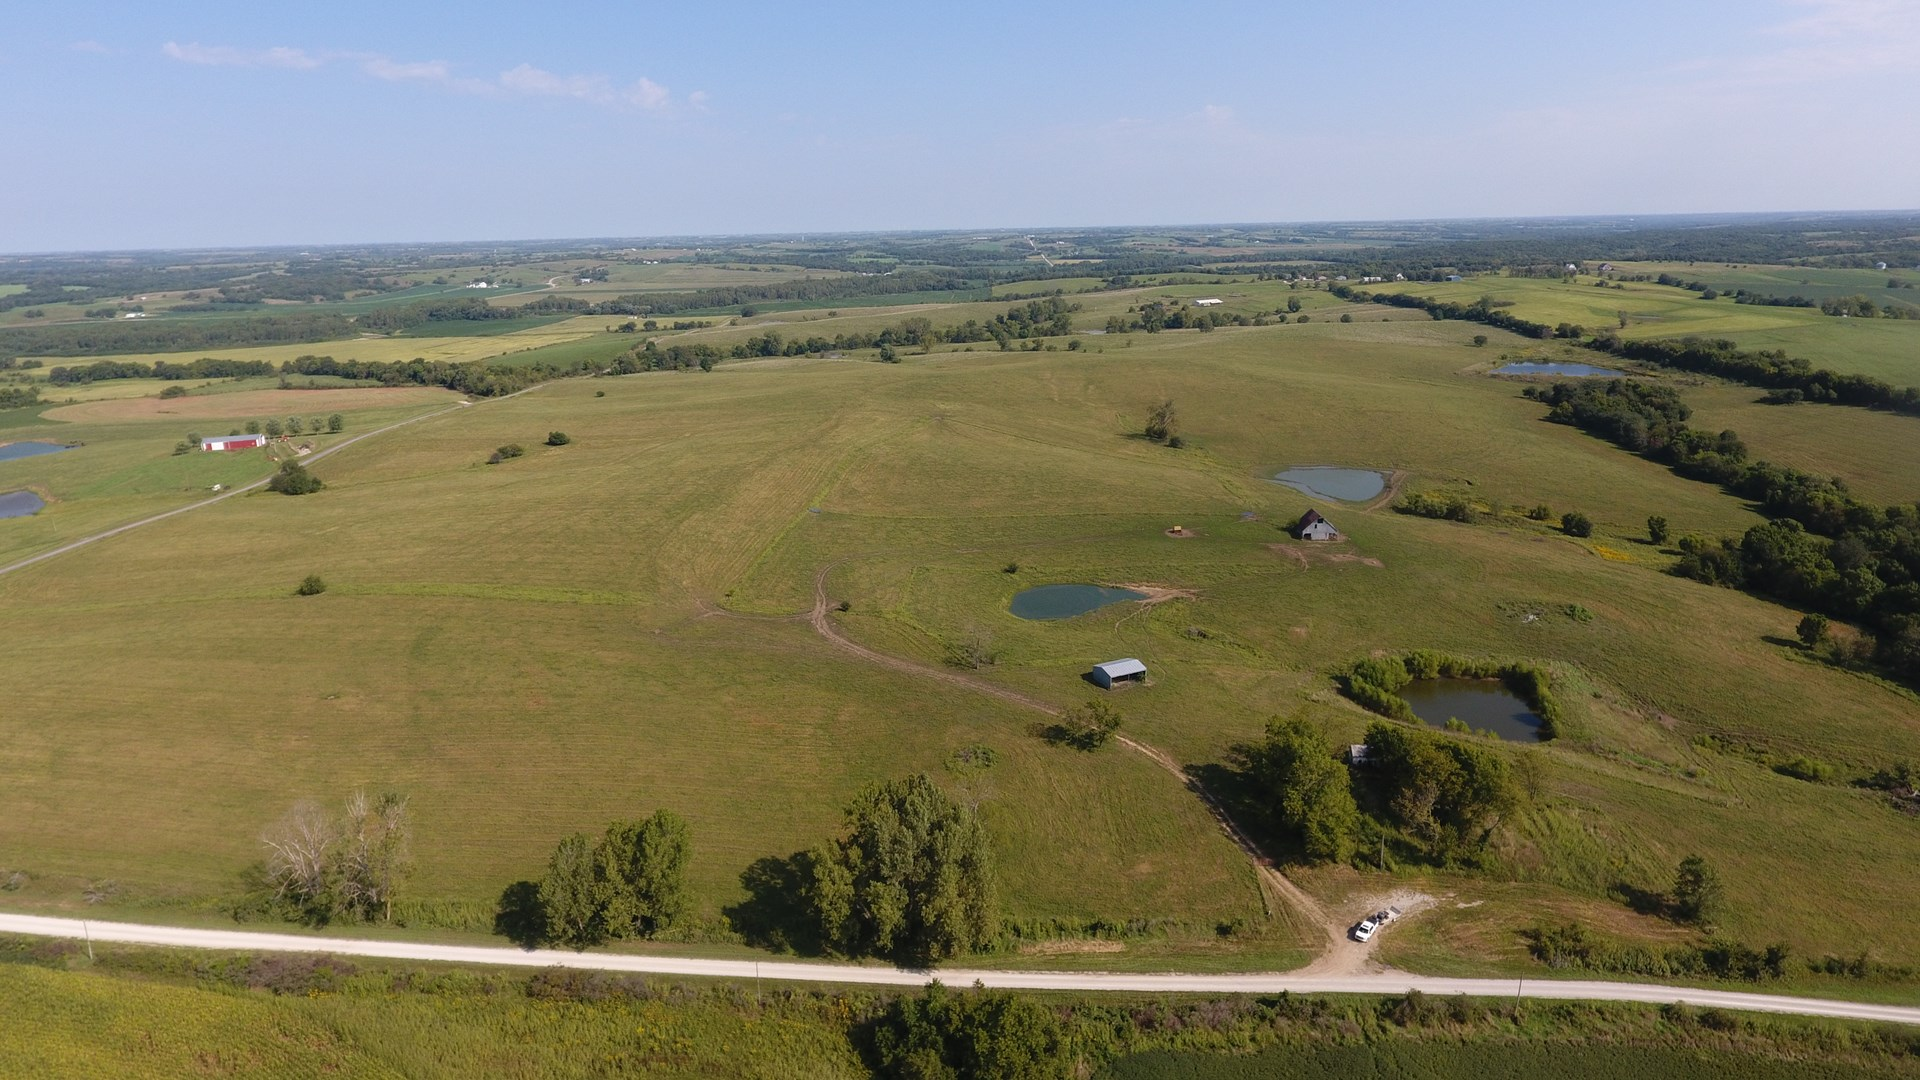 168 Acres for Sale in Grant City, MO